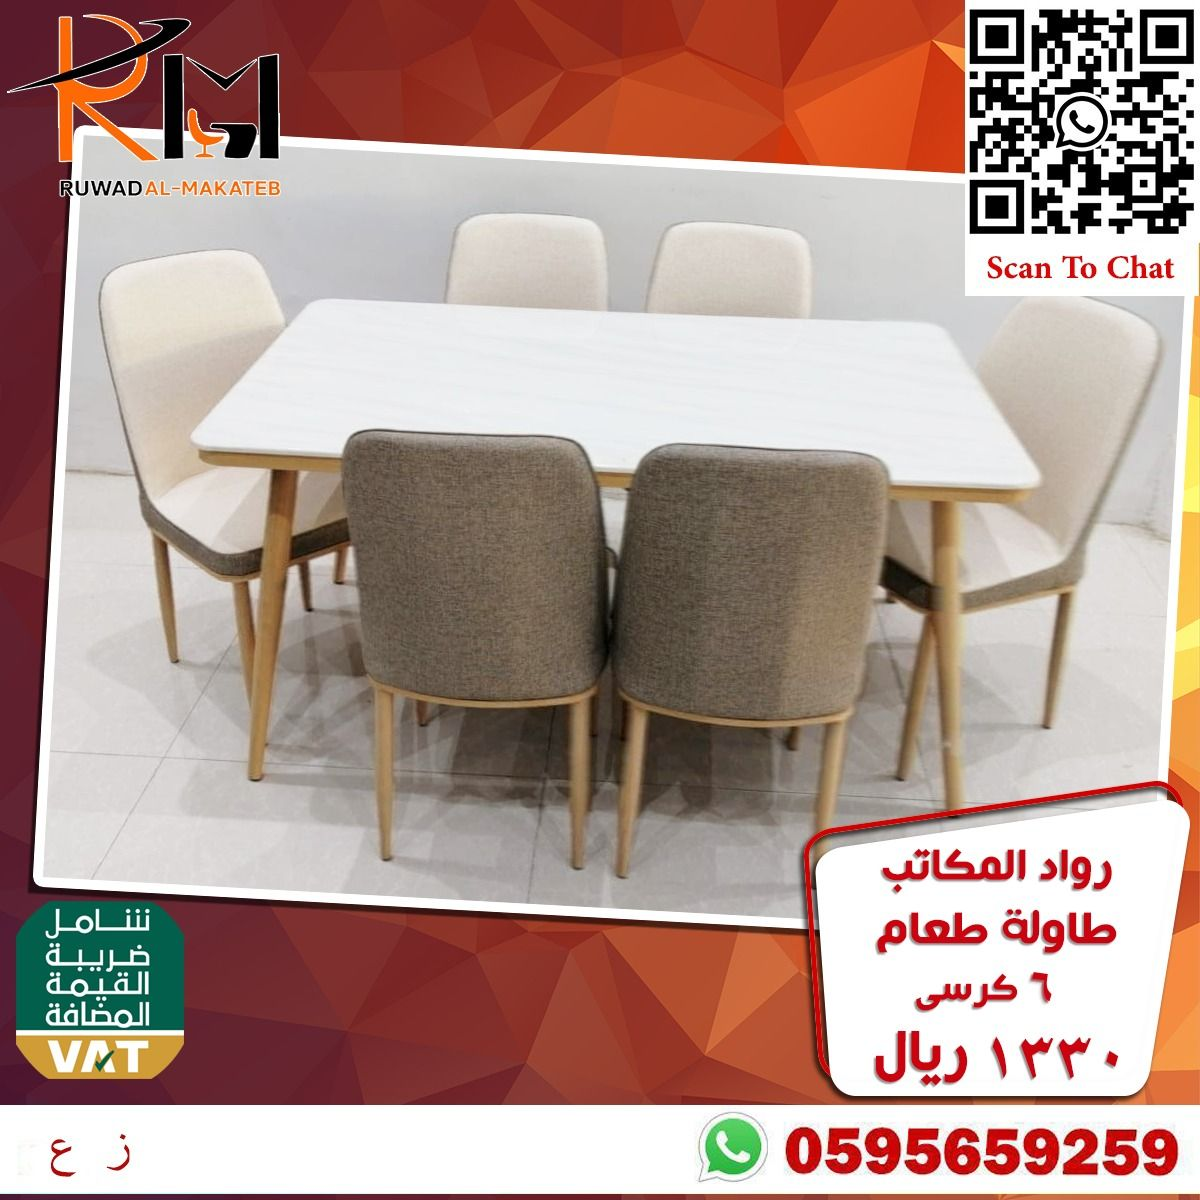 طاولة طعام مودرن بيج In 2021 Coffee Table Dining Chairs Home Decor